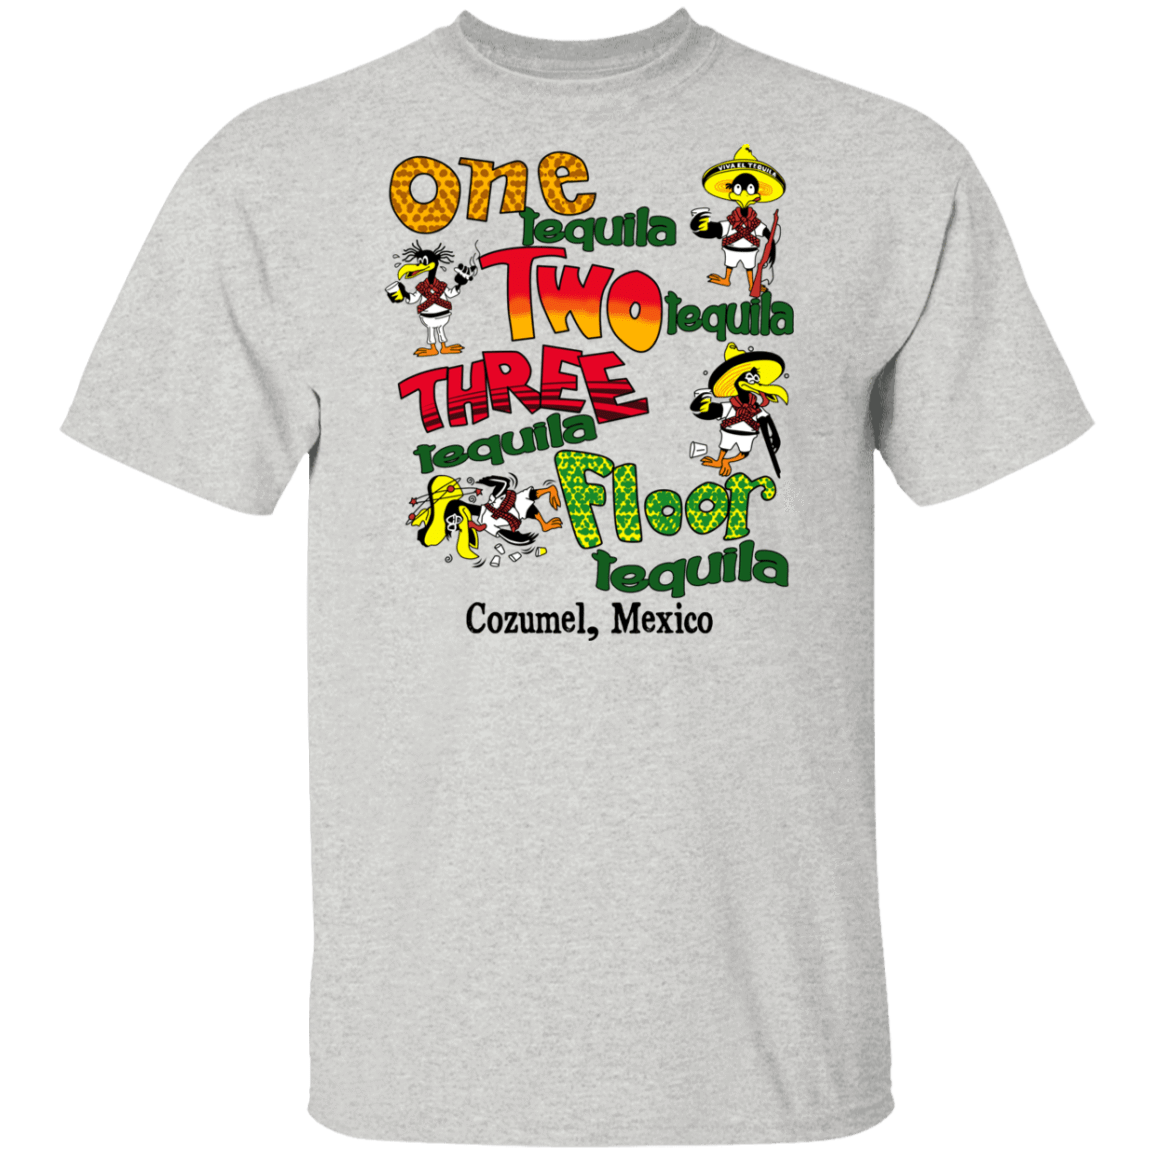 One Tequila Two Tequila Three Tequila Floor Mexico T-Shirts, Hoodies, Tank 1049-9952-80779099-48184 - Tee Ript